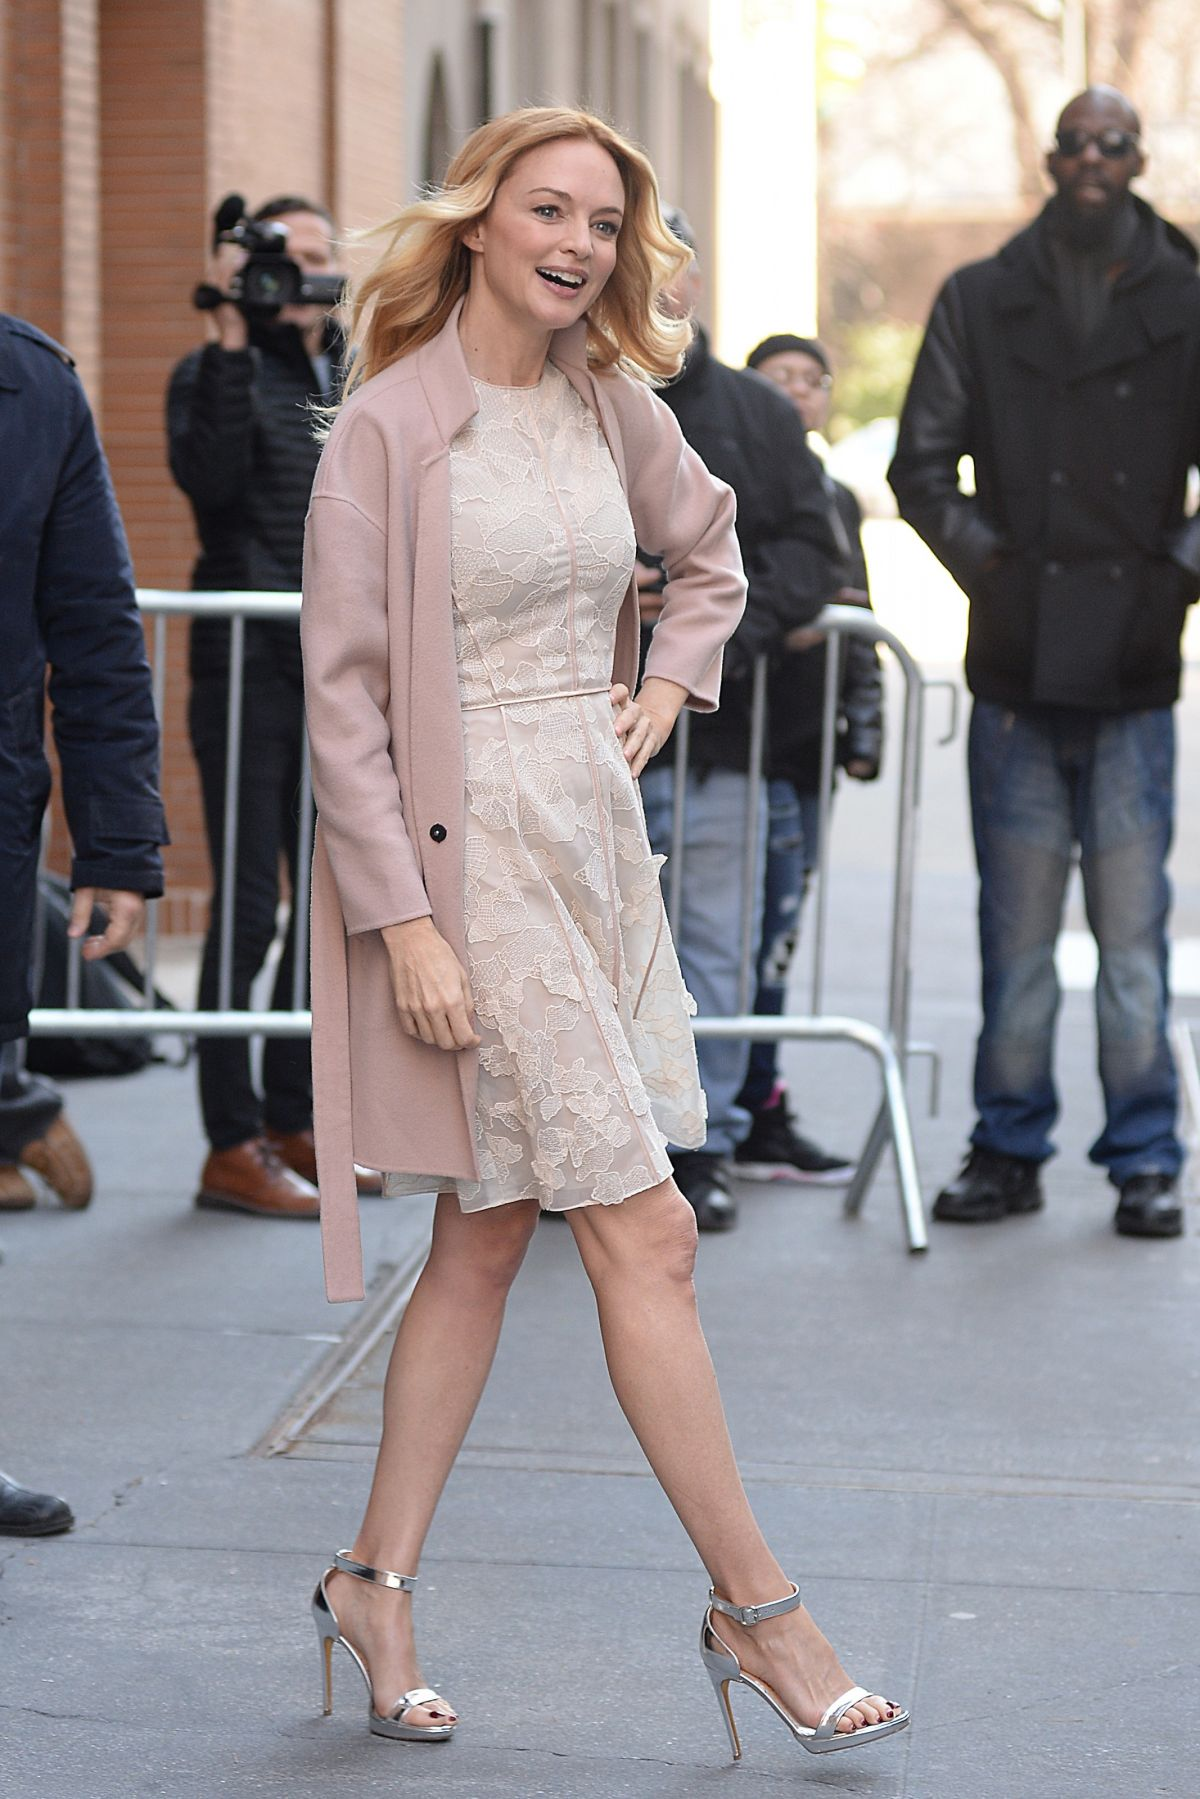 Heather Graham Hot heather graham classy in a pretty dress and silver high